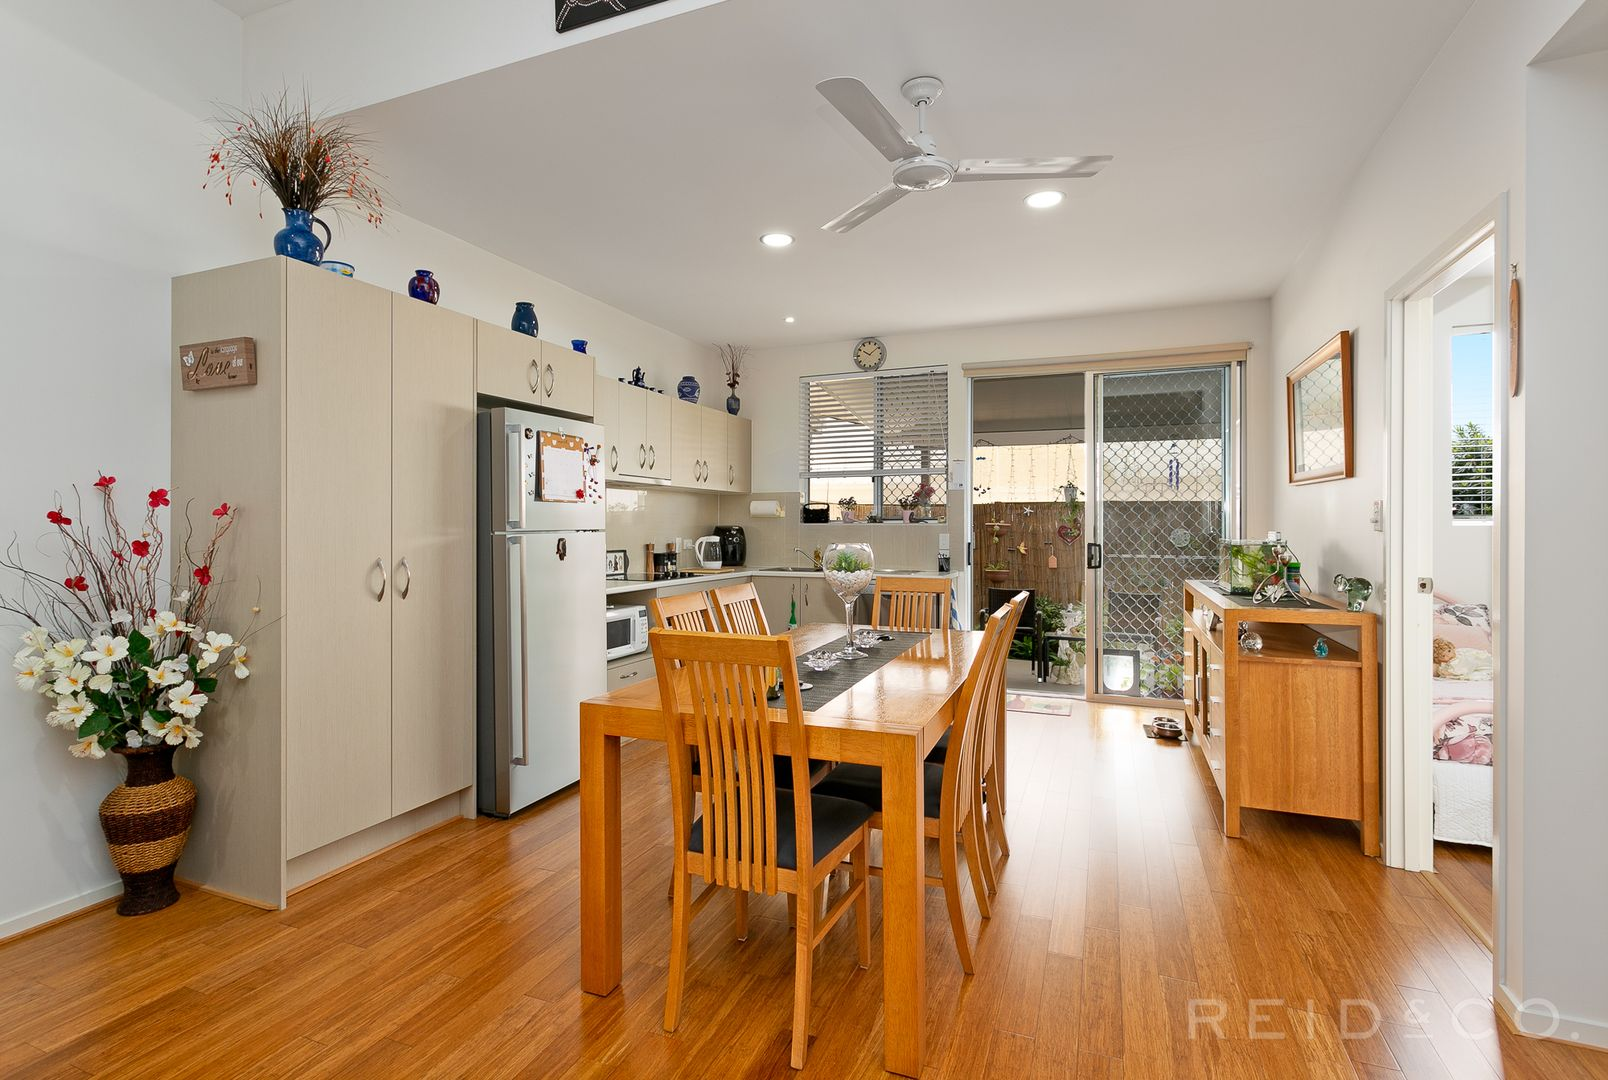 2/564 Oxley Avenue, Scarborough QLD 4020, Image 0